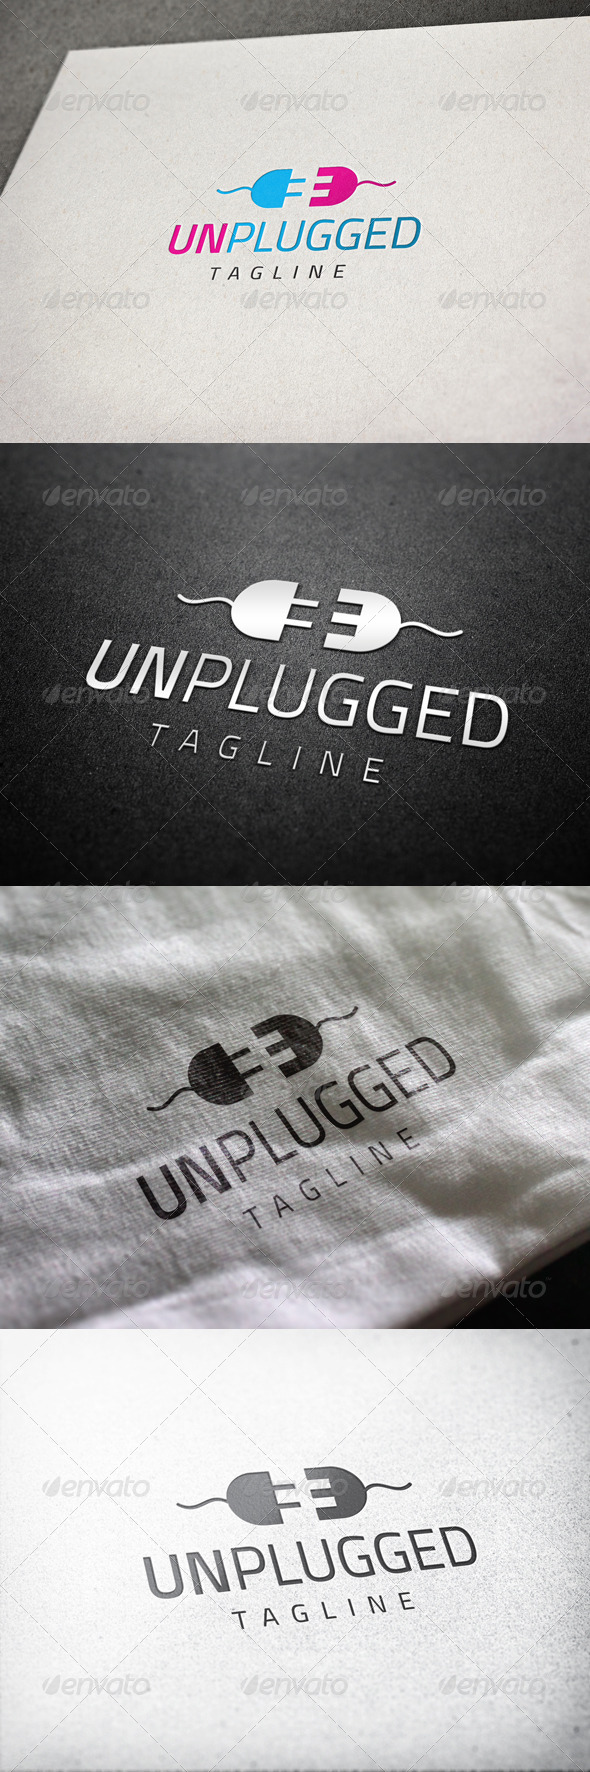 Unplugged Logo - Abstract Logo Templates